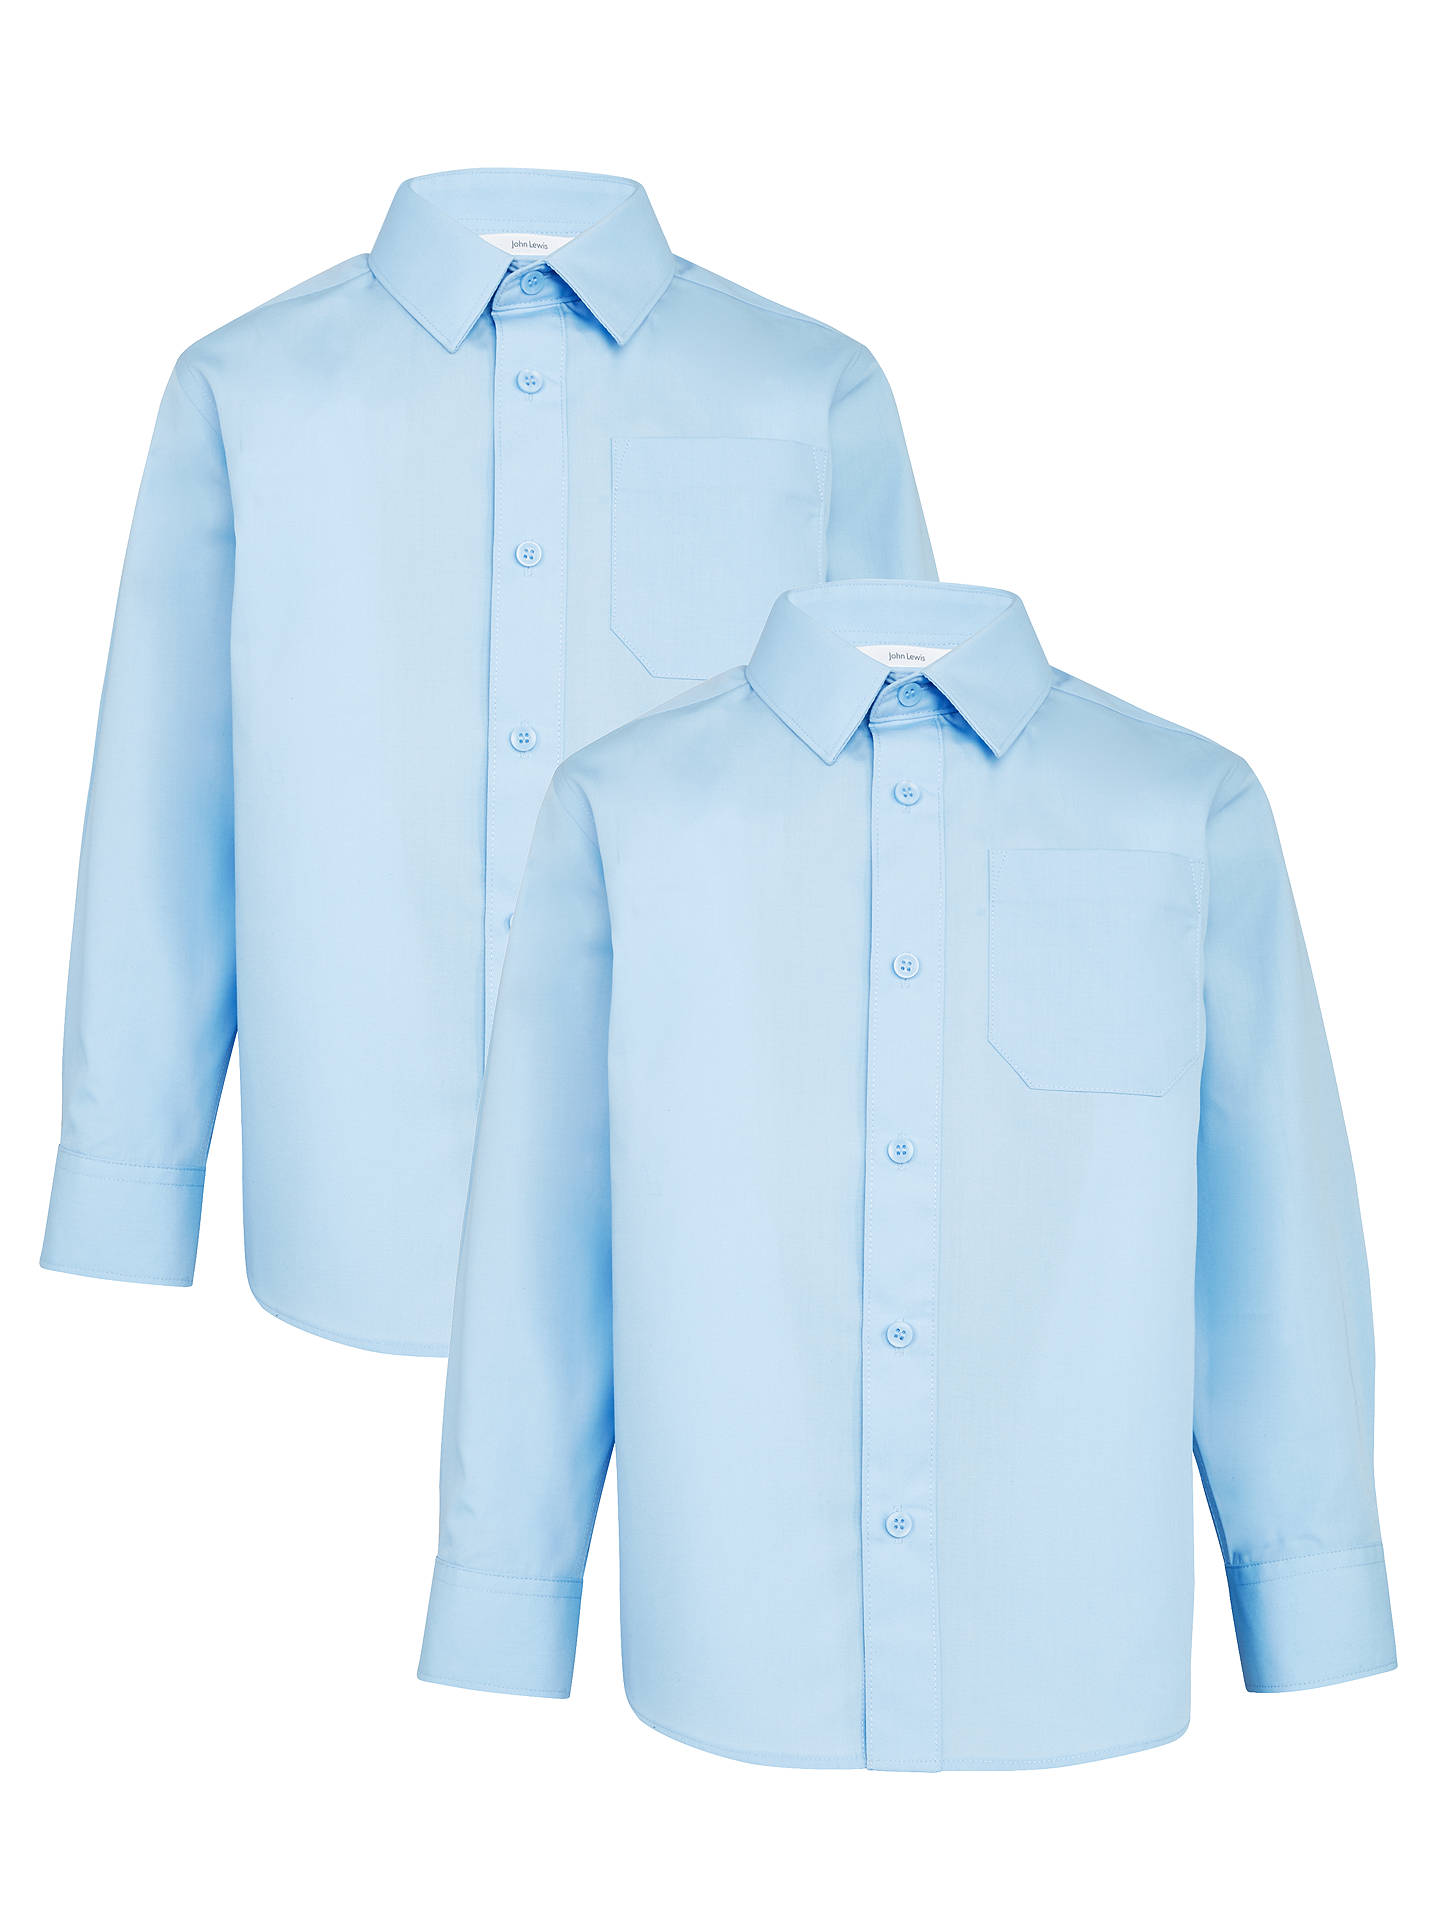 John Lewis Boys Easy Care Long Sleeve School Shirt  Pack of 2 Blue Aged 3-12